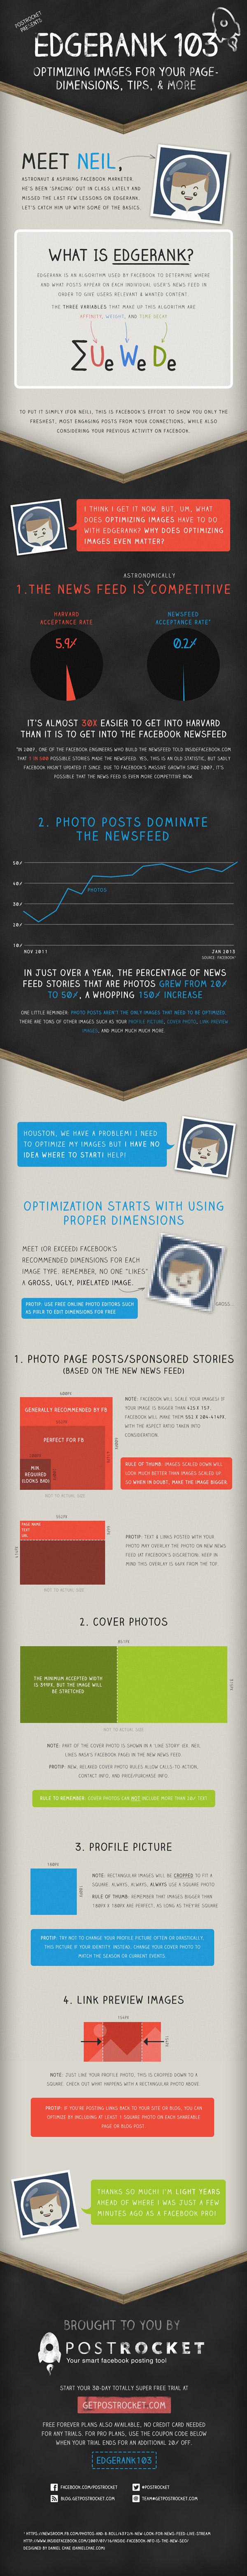 Photos Dominate Facebook's News Feed, Here Is How To Optimize Them